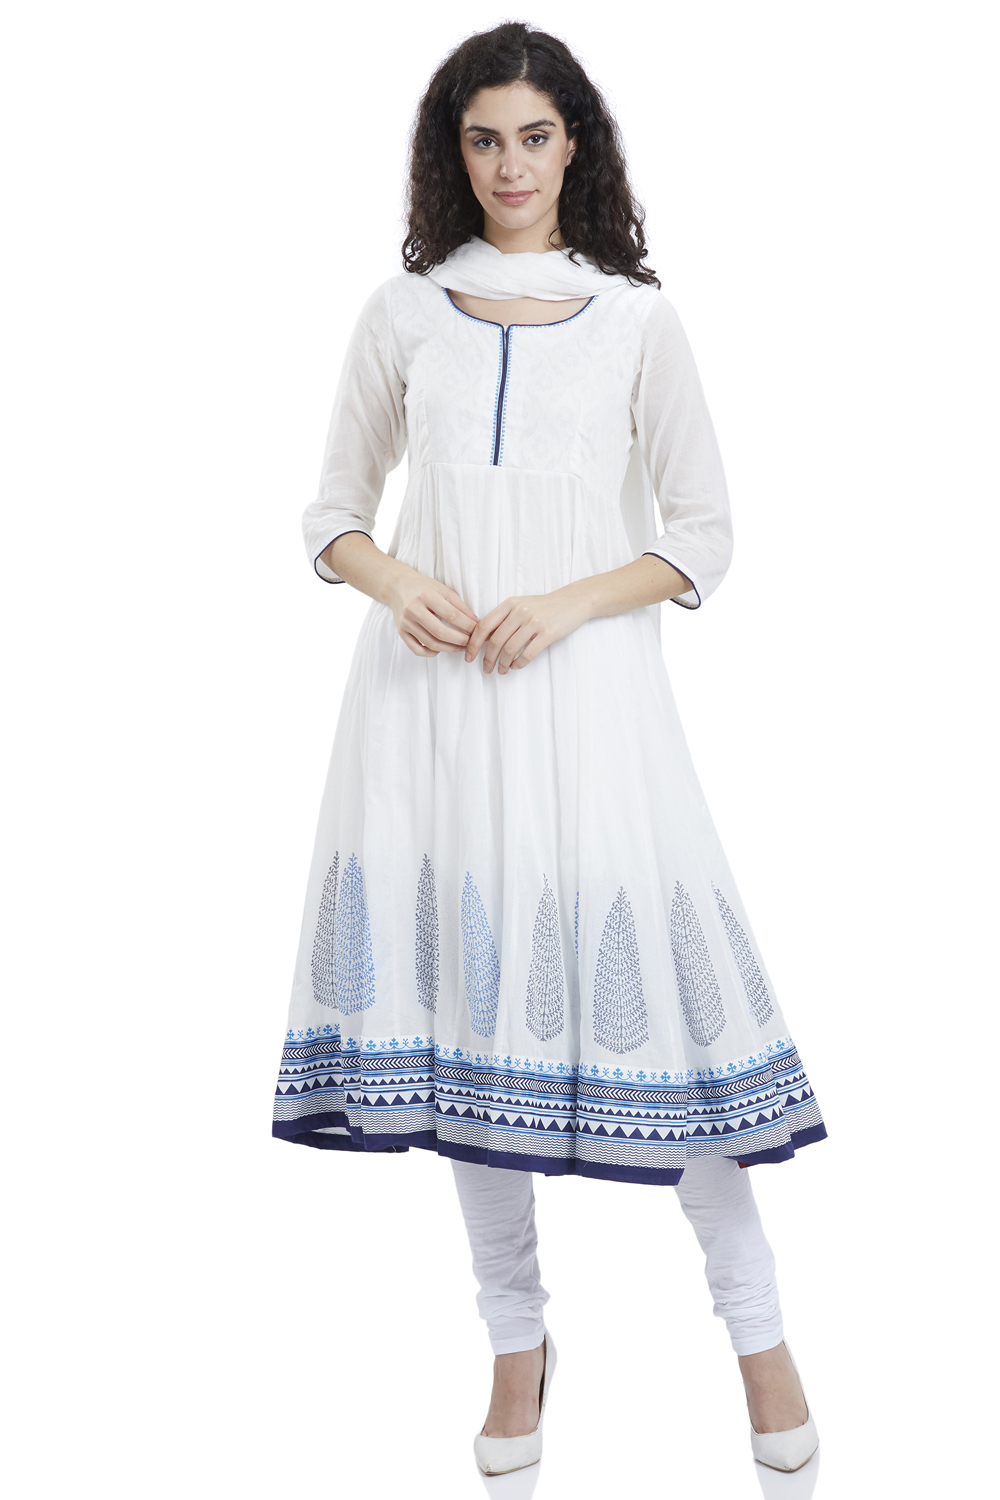 fb78a8ad92d Buy Online Off White Anarkali Cotton Suit Set for Women   Girls at Best  Prices in Biba India-SKD5059